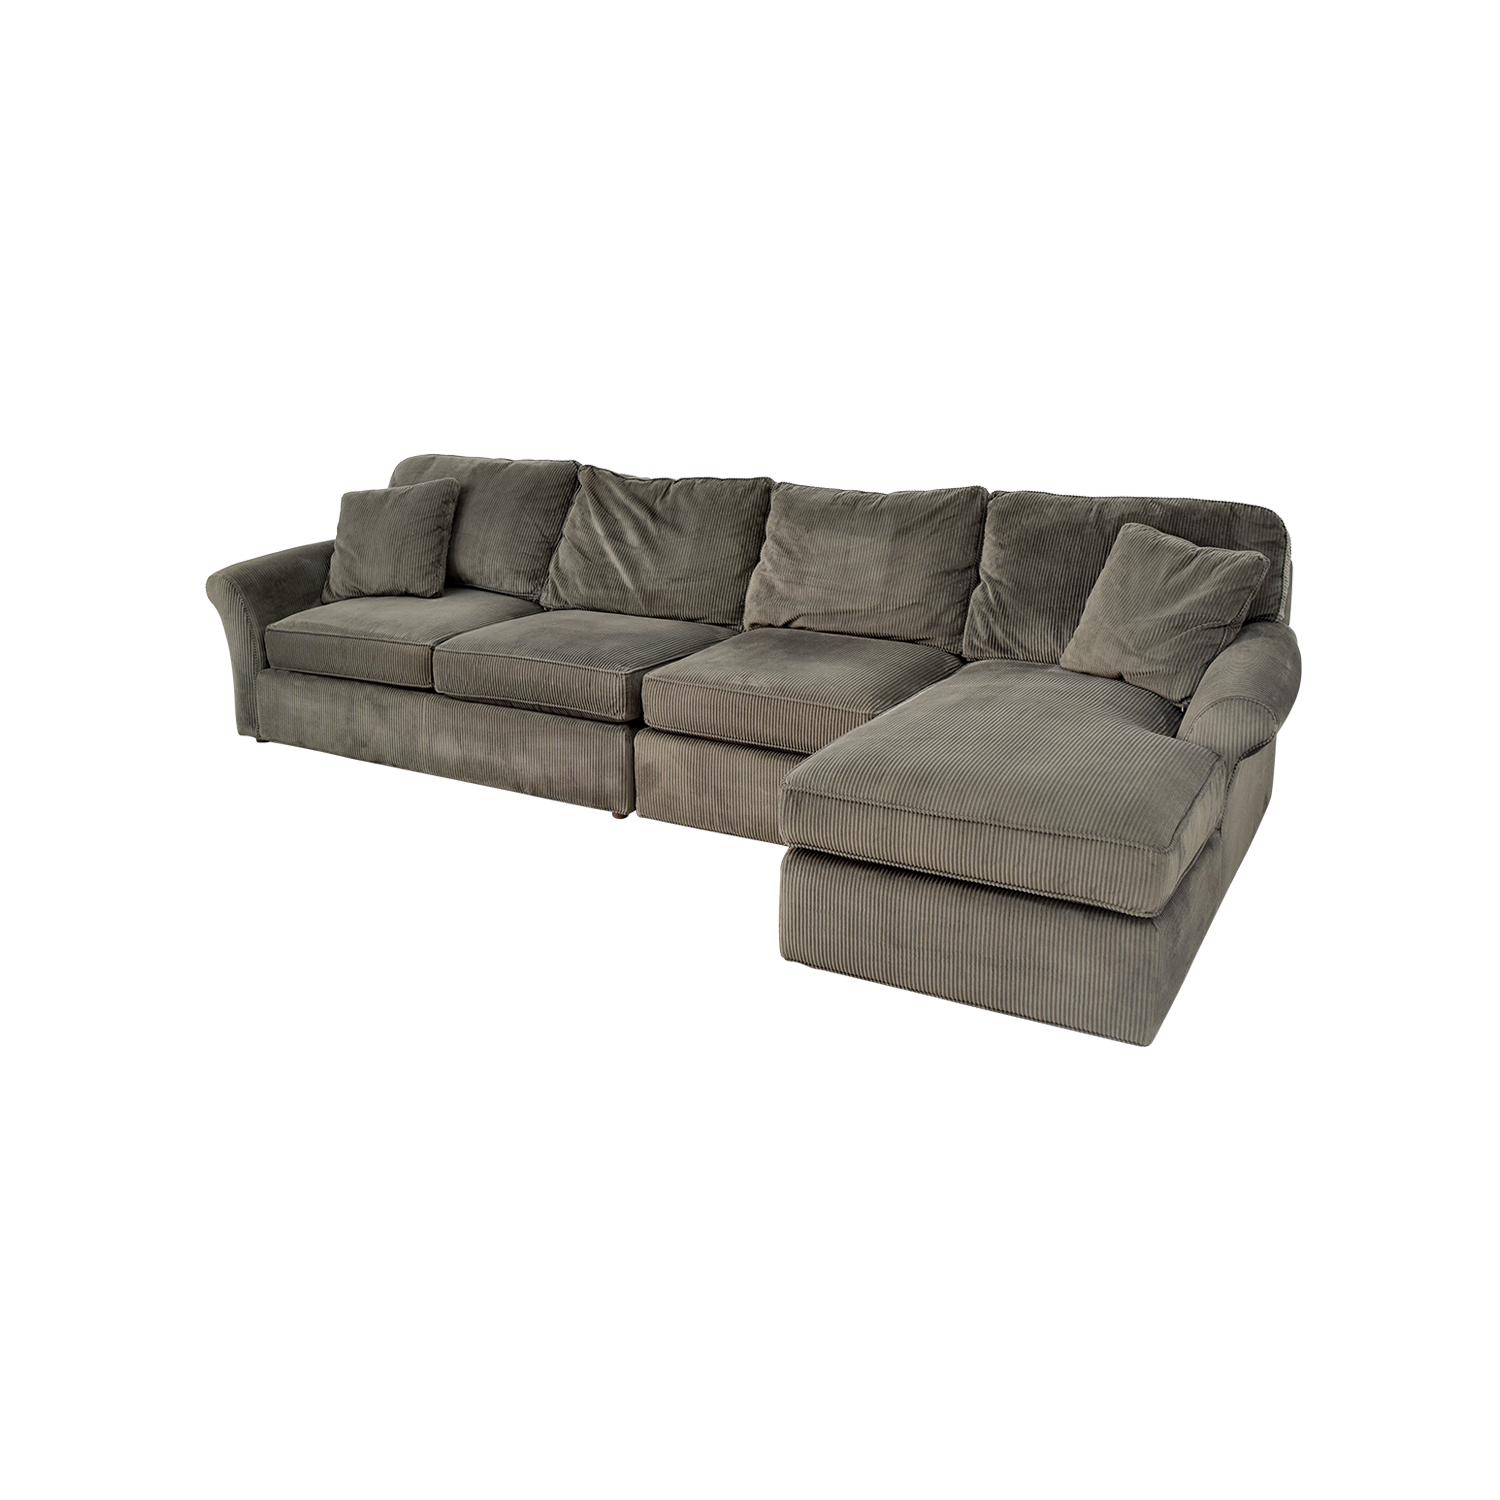 Corduroy Sofa Sectional 74% Off - Macy's Macy's Modern Concepts Charcoal Gray